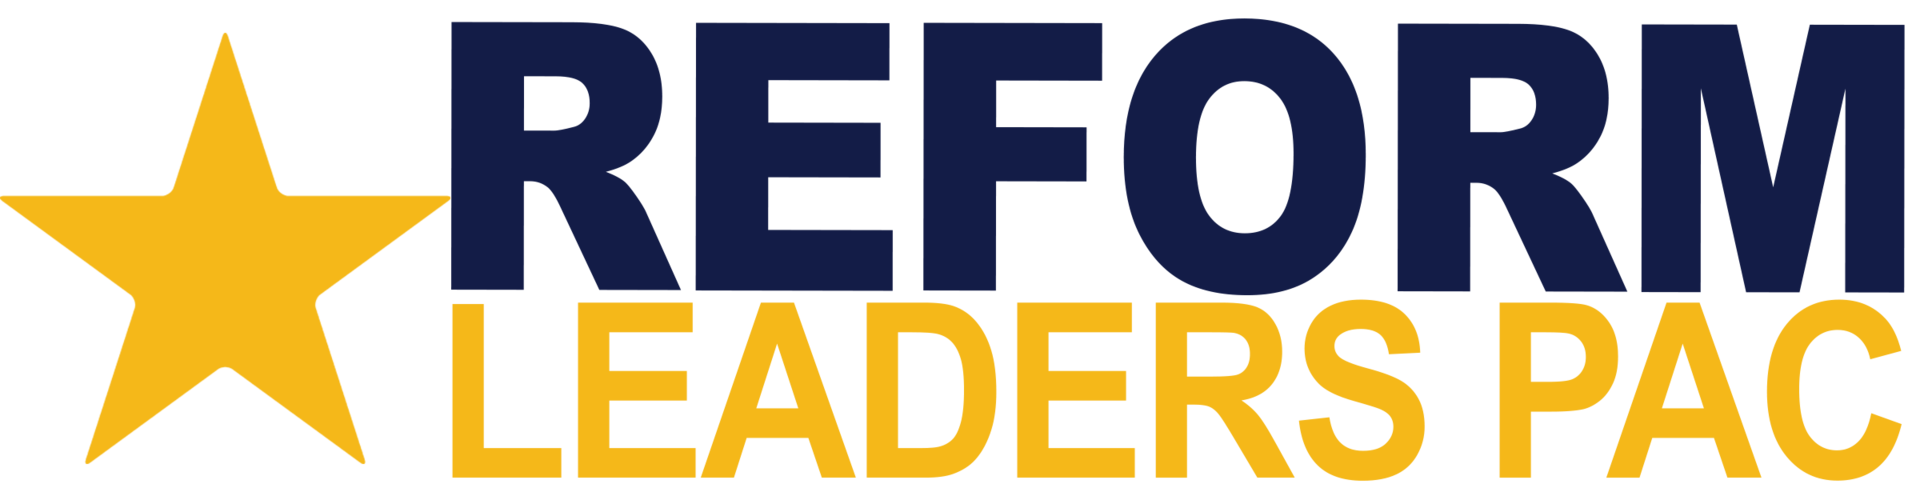 Reform leaders logo new color